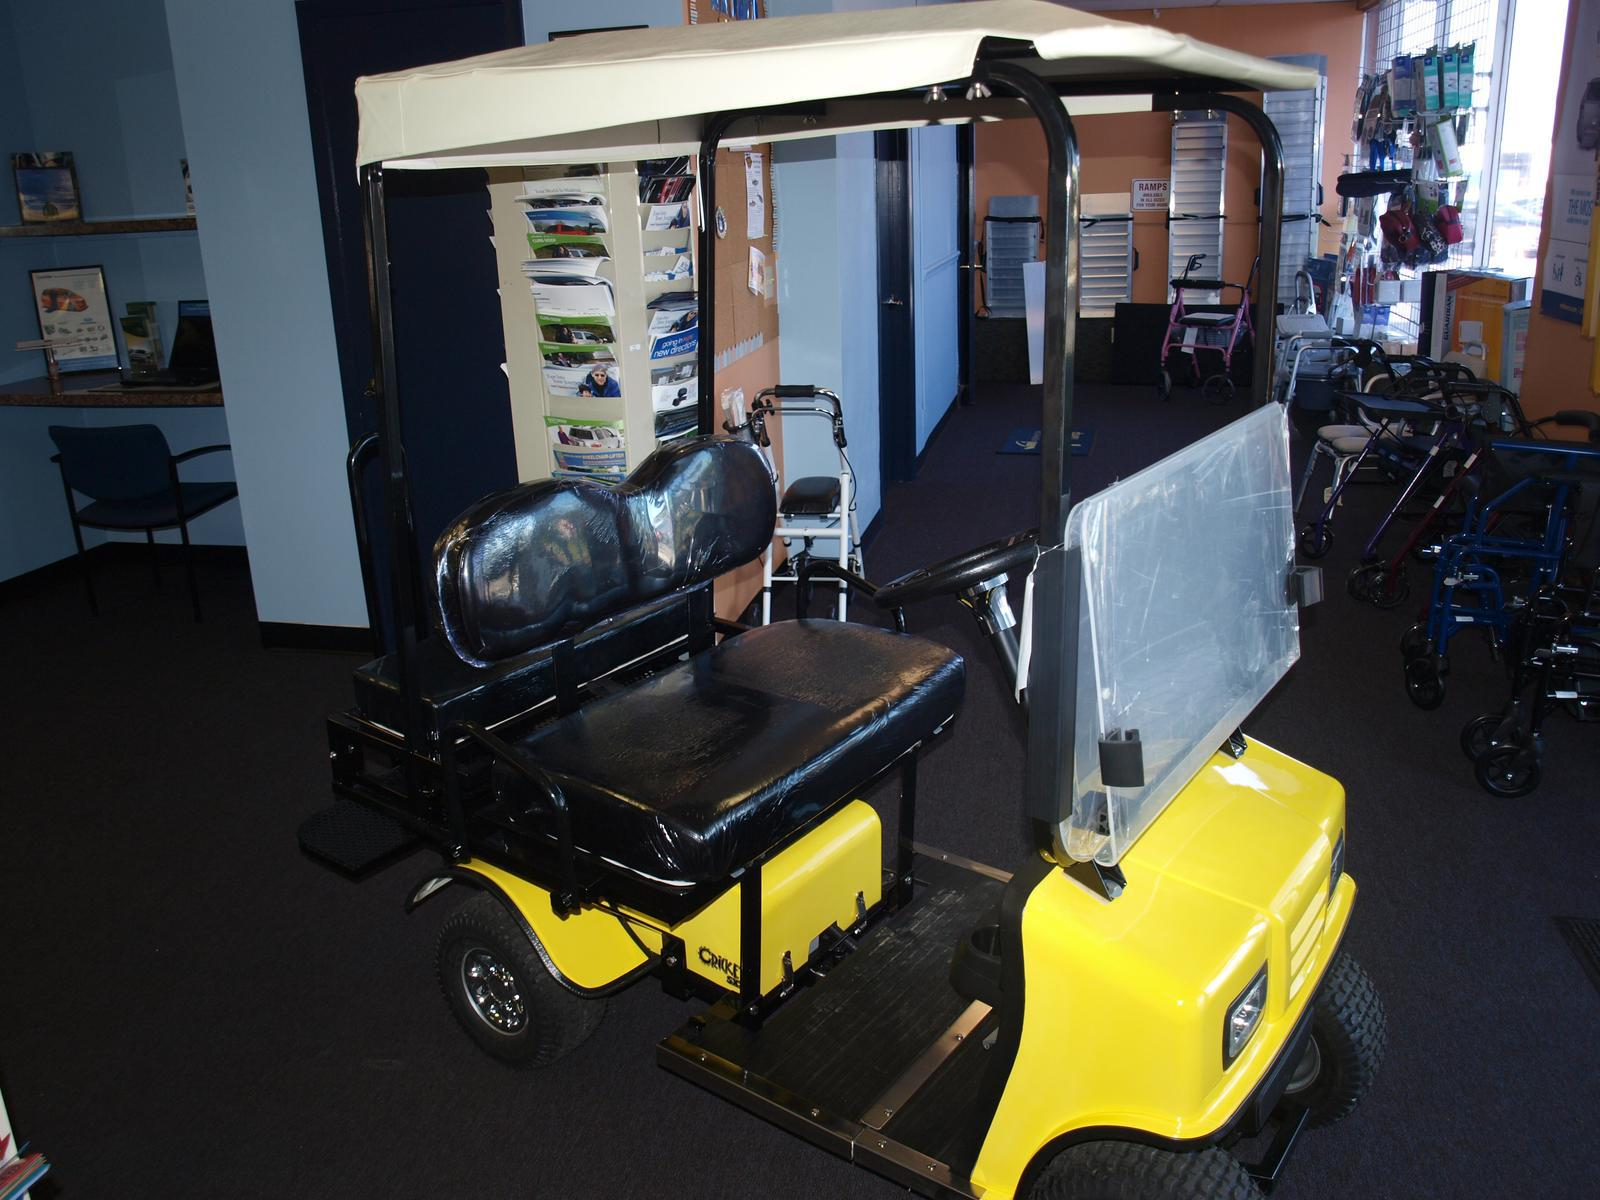 2019 Cricket SX-3 - PGC Portable Golf Cart - Campground, KOA ... on daytona beach golf carts, ez go golf carts, florida golf carts, old golf carts, fargo golf carts, destin golf carts, sayulita golf carts, corpus christi golf carts, houston golf carts, myrtle beach golf carts, georgia golf carts, isla mujeres golf carts, key west golf carts,